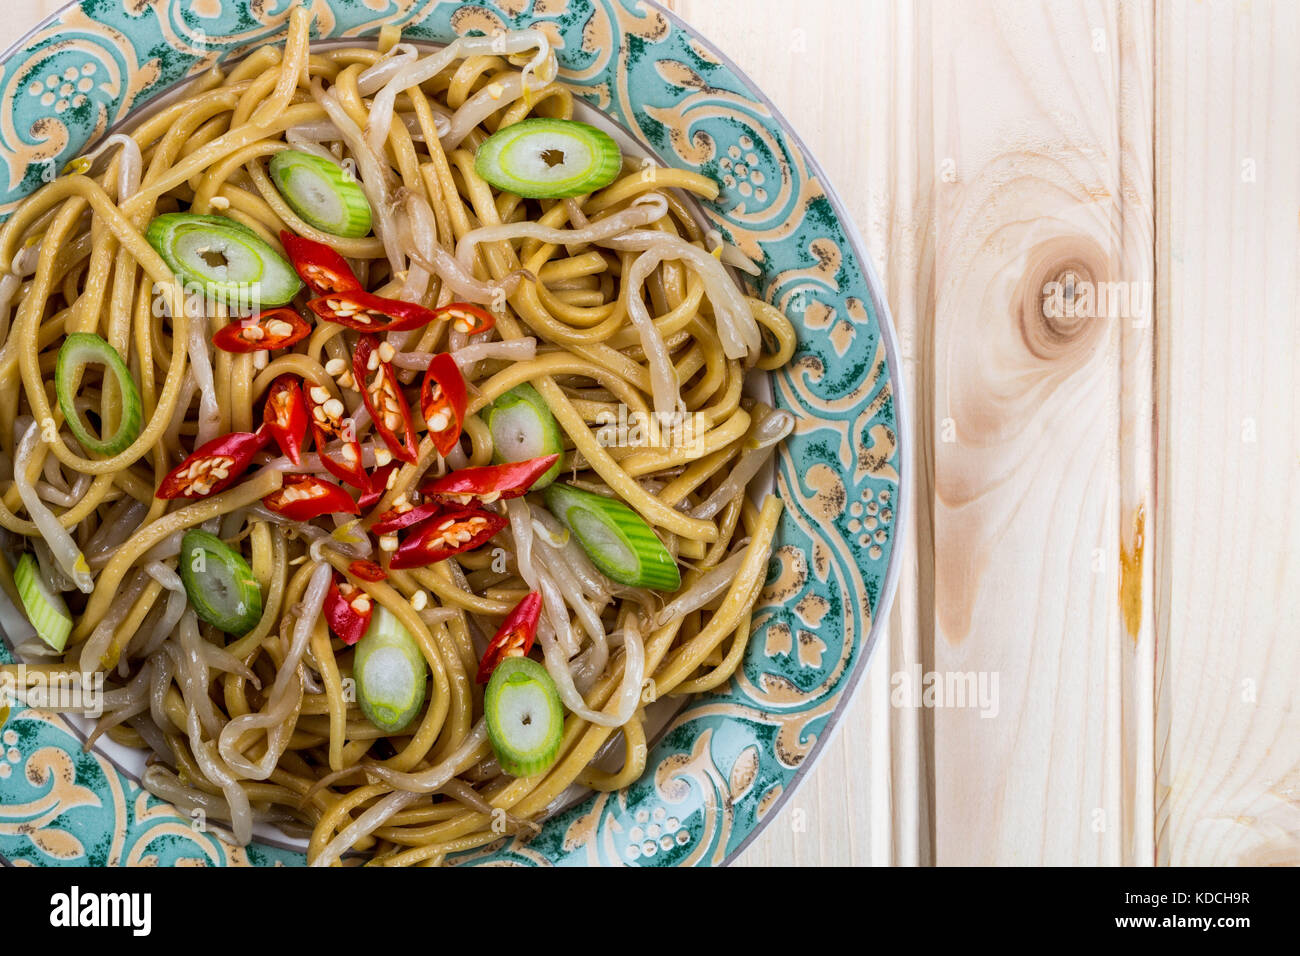 Chinese Style Wok Stir Fried Egg Noodles with Beansprouts and Red Chilli On A Light Pinewood Background, - Stock Image